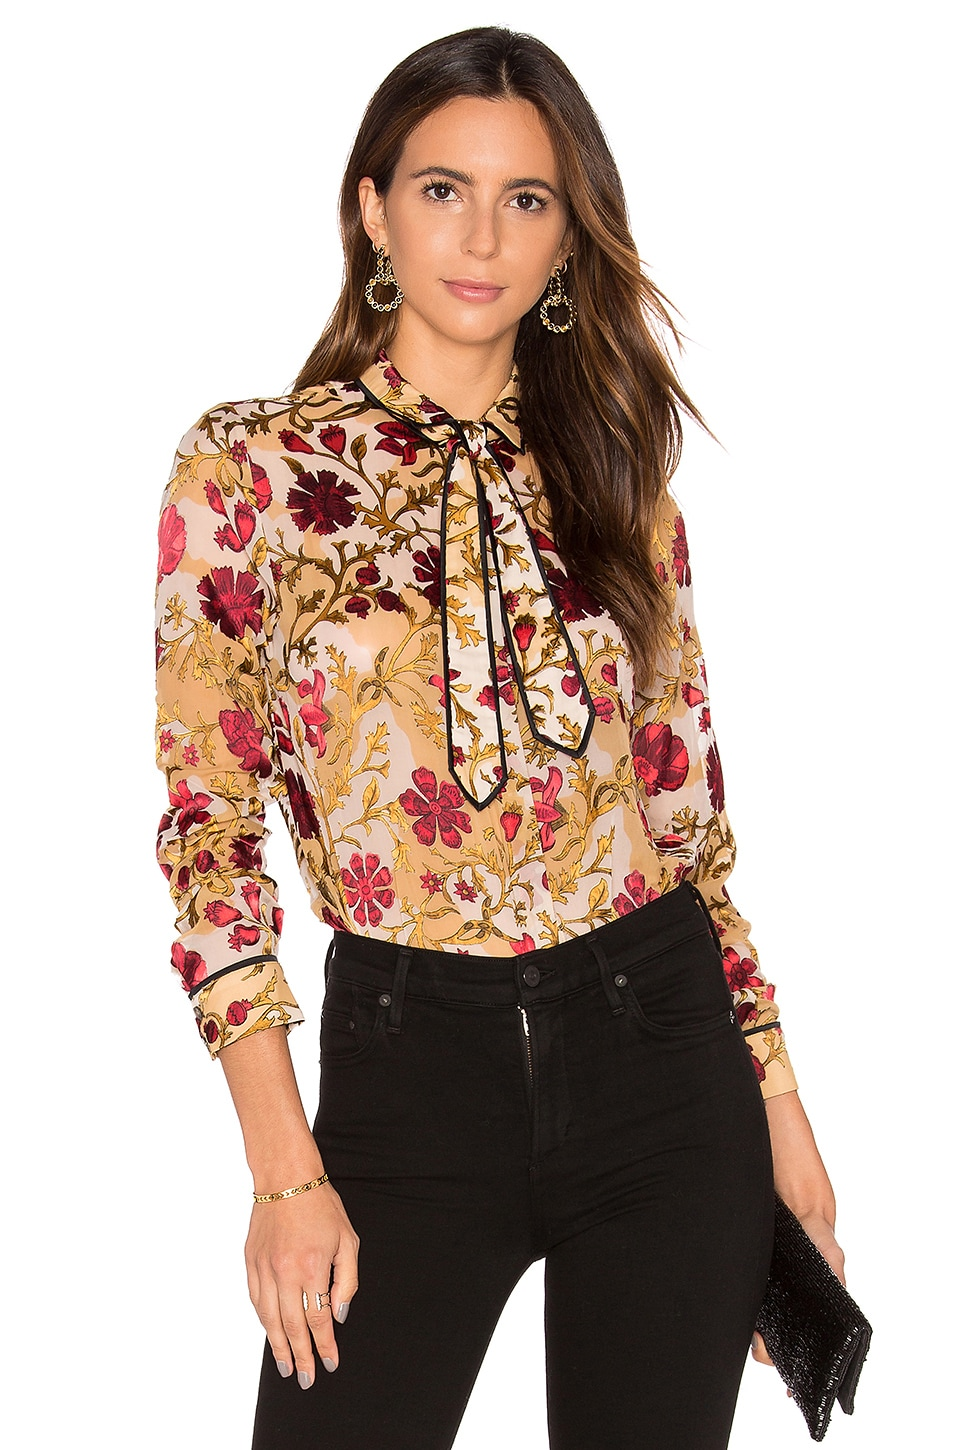 Alice + Olivia Cora Contrast Blouse in Medieval Floral